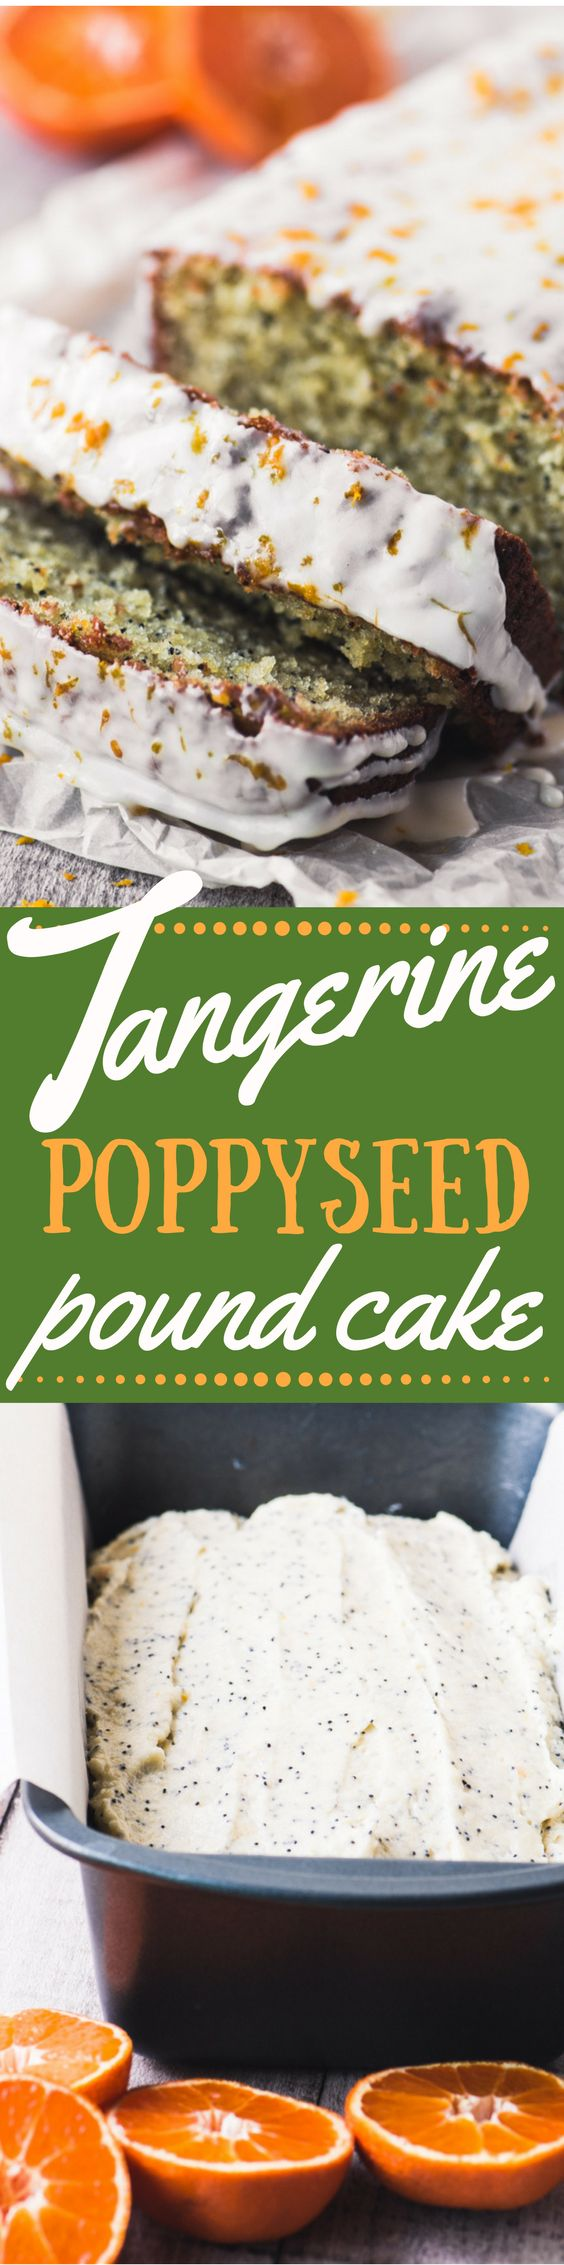 Tangerine Poppy Seed Pound Cake is bursting with juicy citrus flavor and crunchy poppy seeds ~ just when you thought winter had nothing fresh to offer! ~ theviewfromgreatisland.com